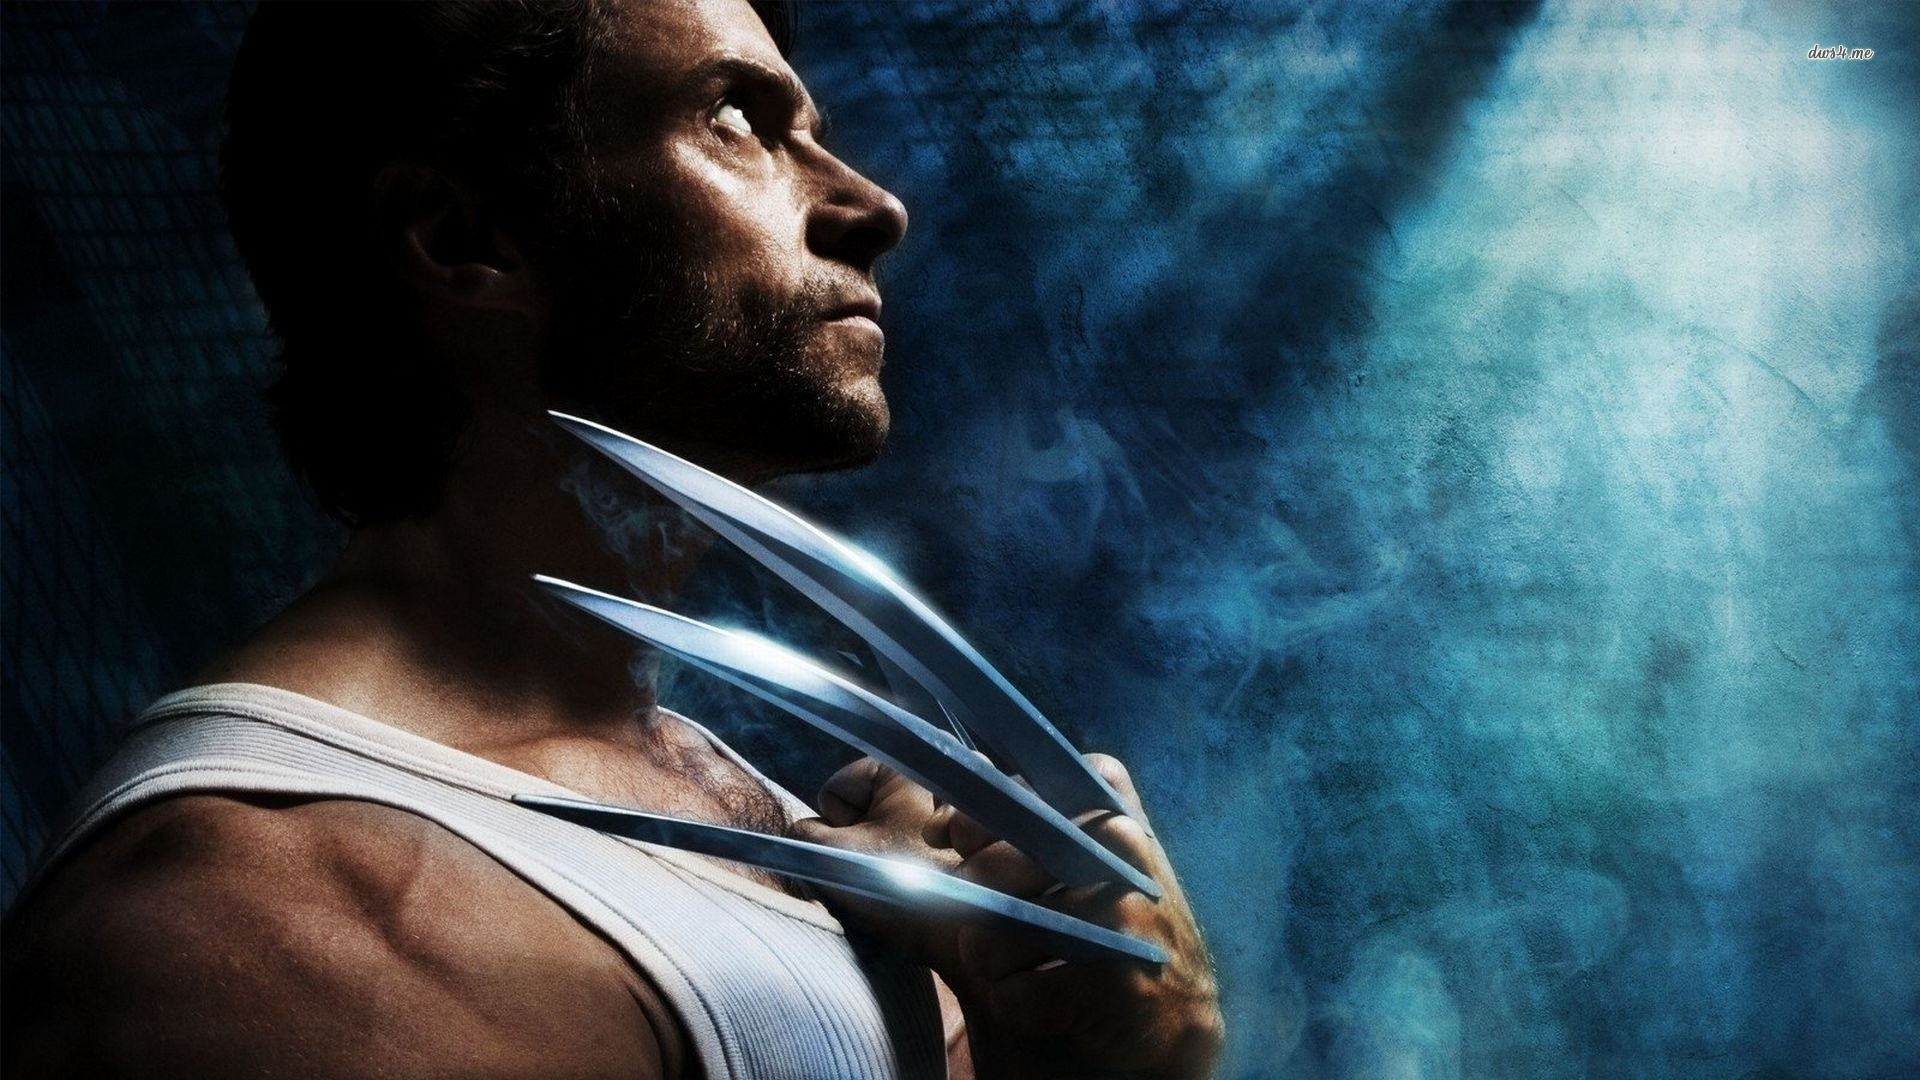 wolverine 3' confirmedfox to be r-rated - geekfeed